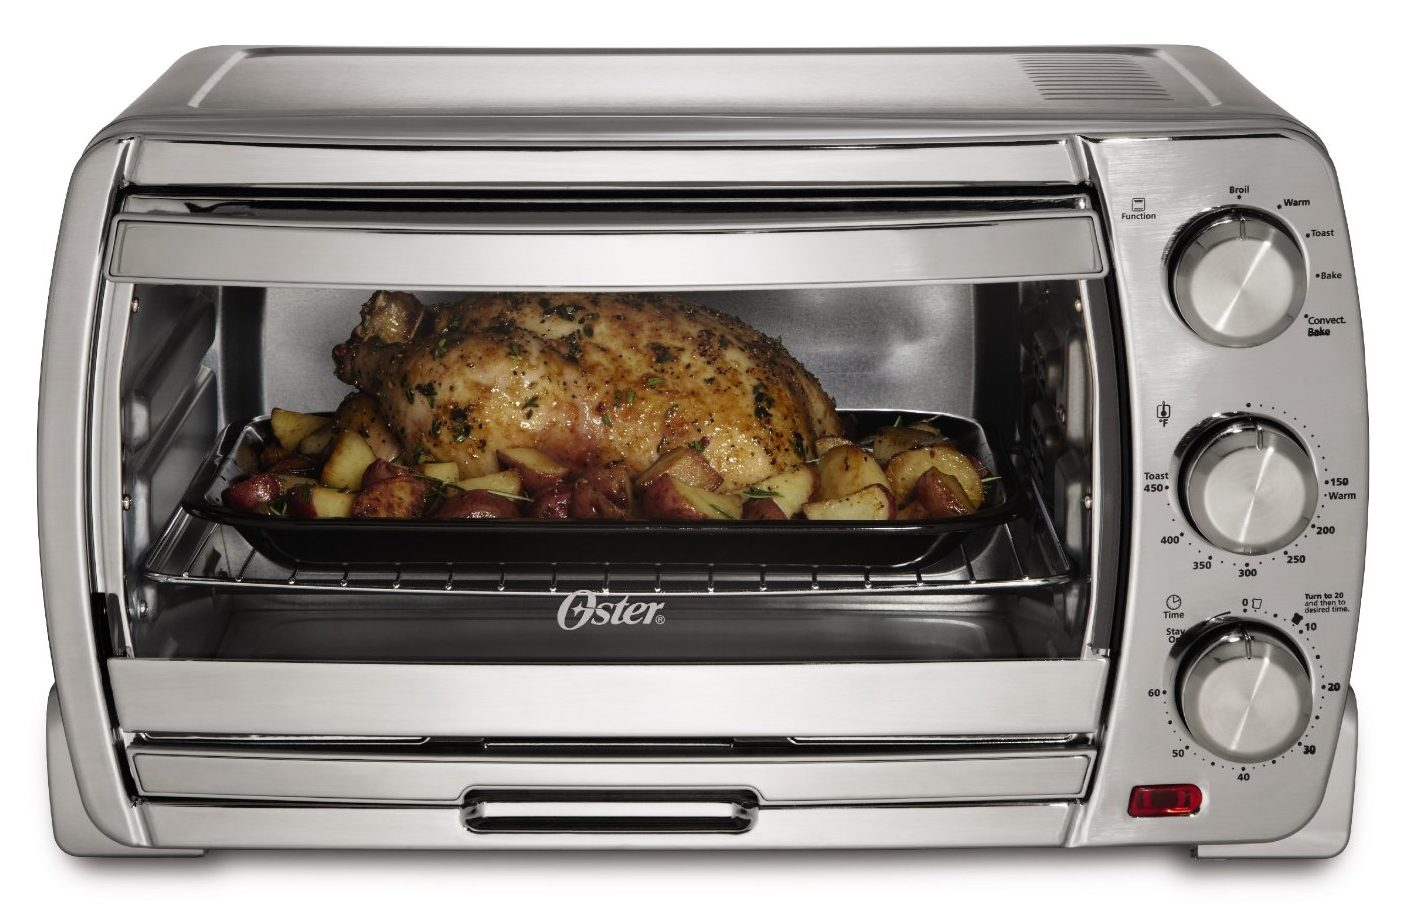 Best Oster Toaster Oven 6 Slice Amp Extra Large Capacity